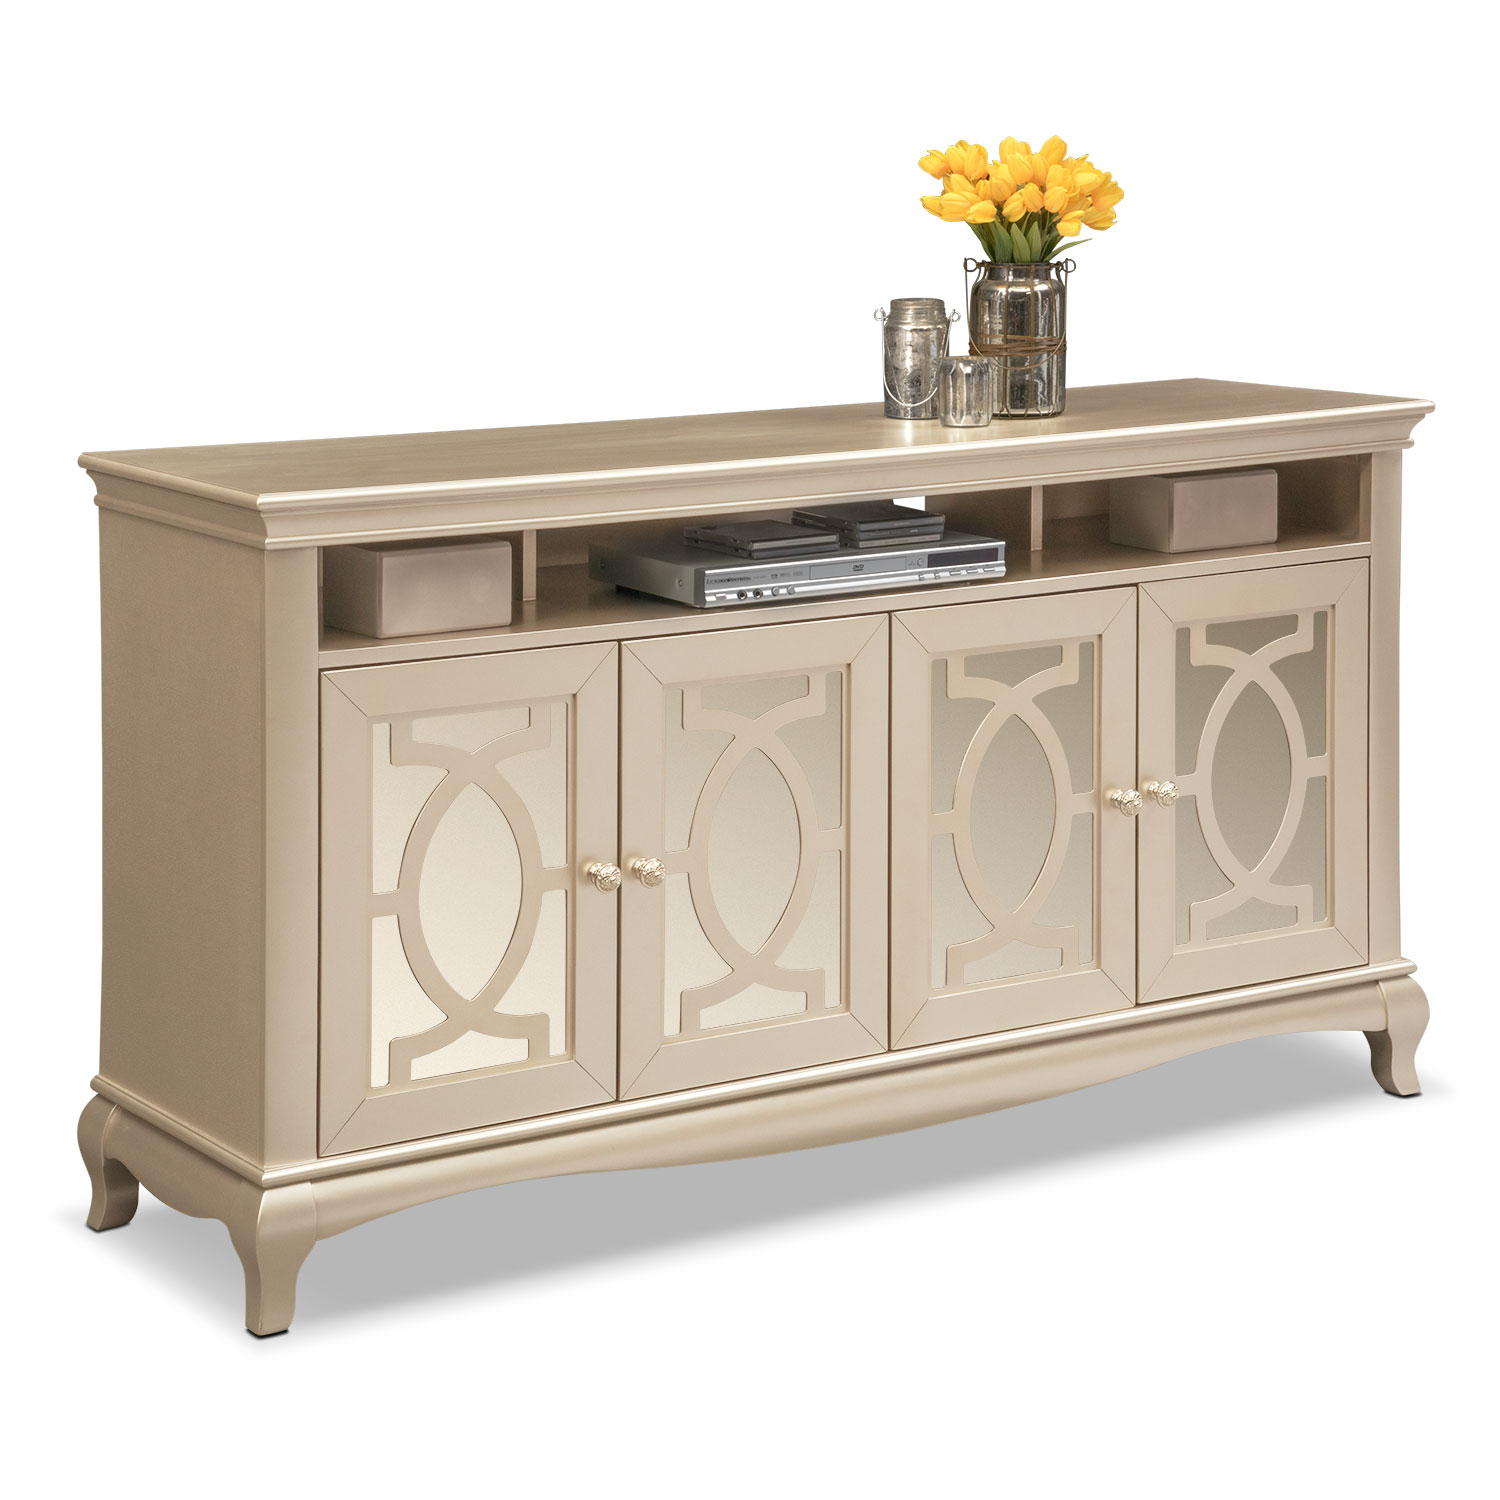 Allegro TV Credenza - Platinum | American Signature Furniture